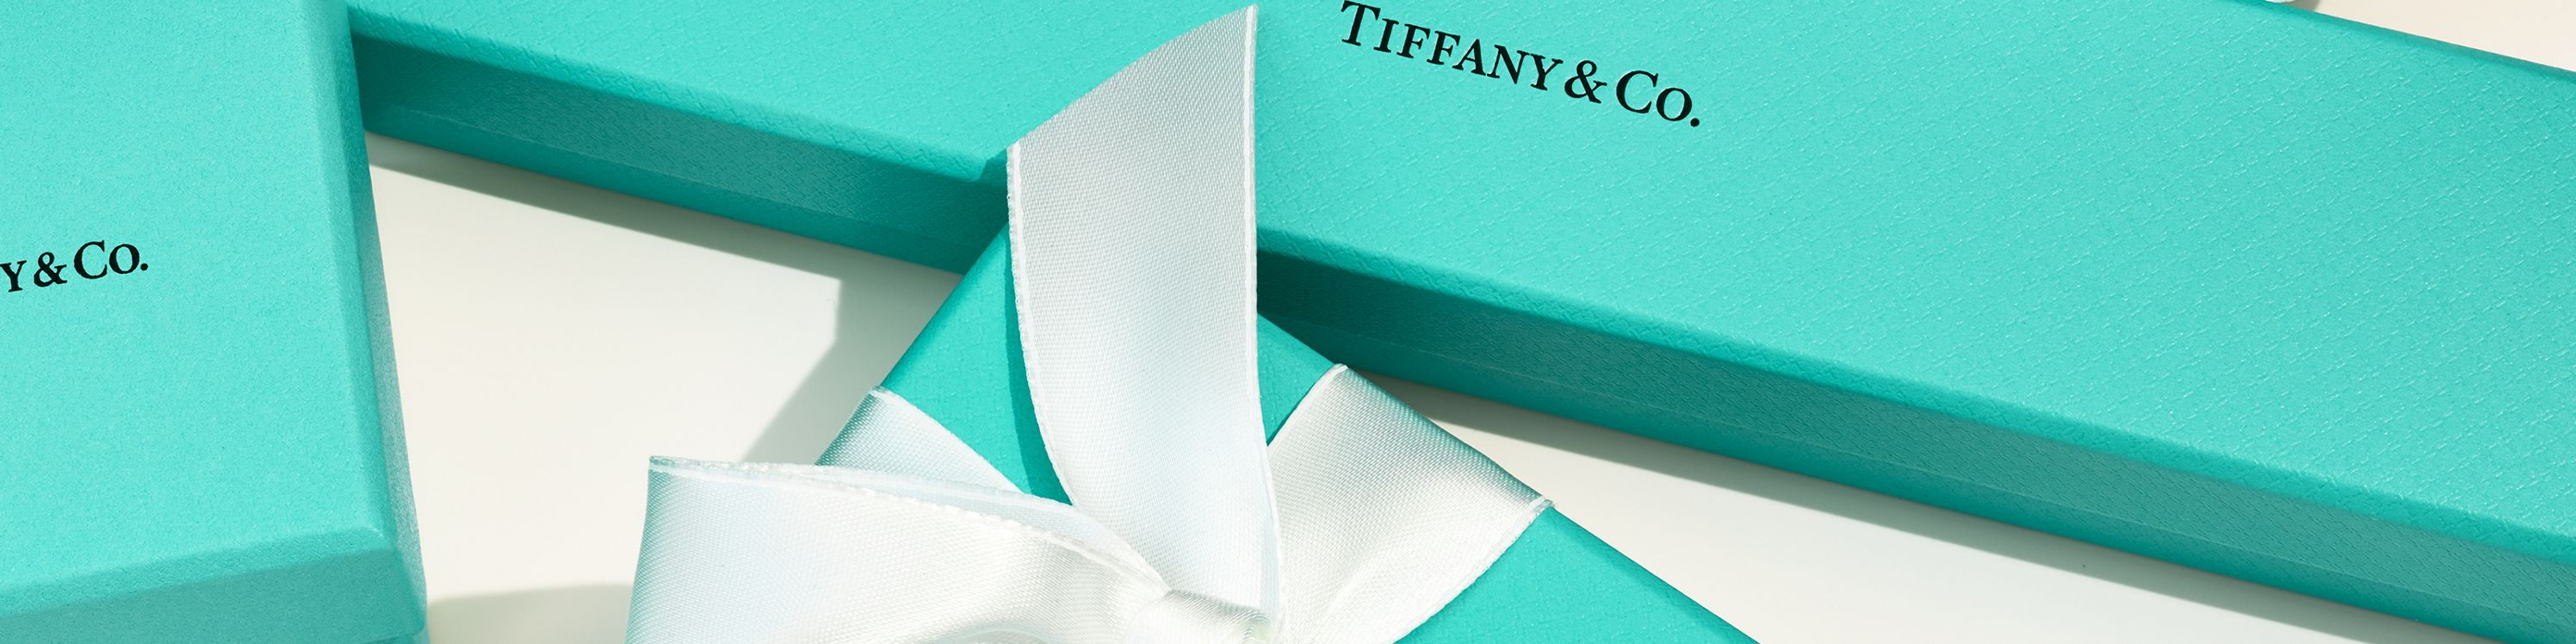 Tiffany & Co. 年表